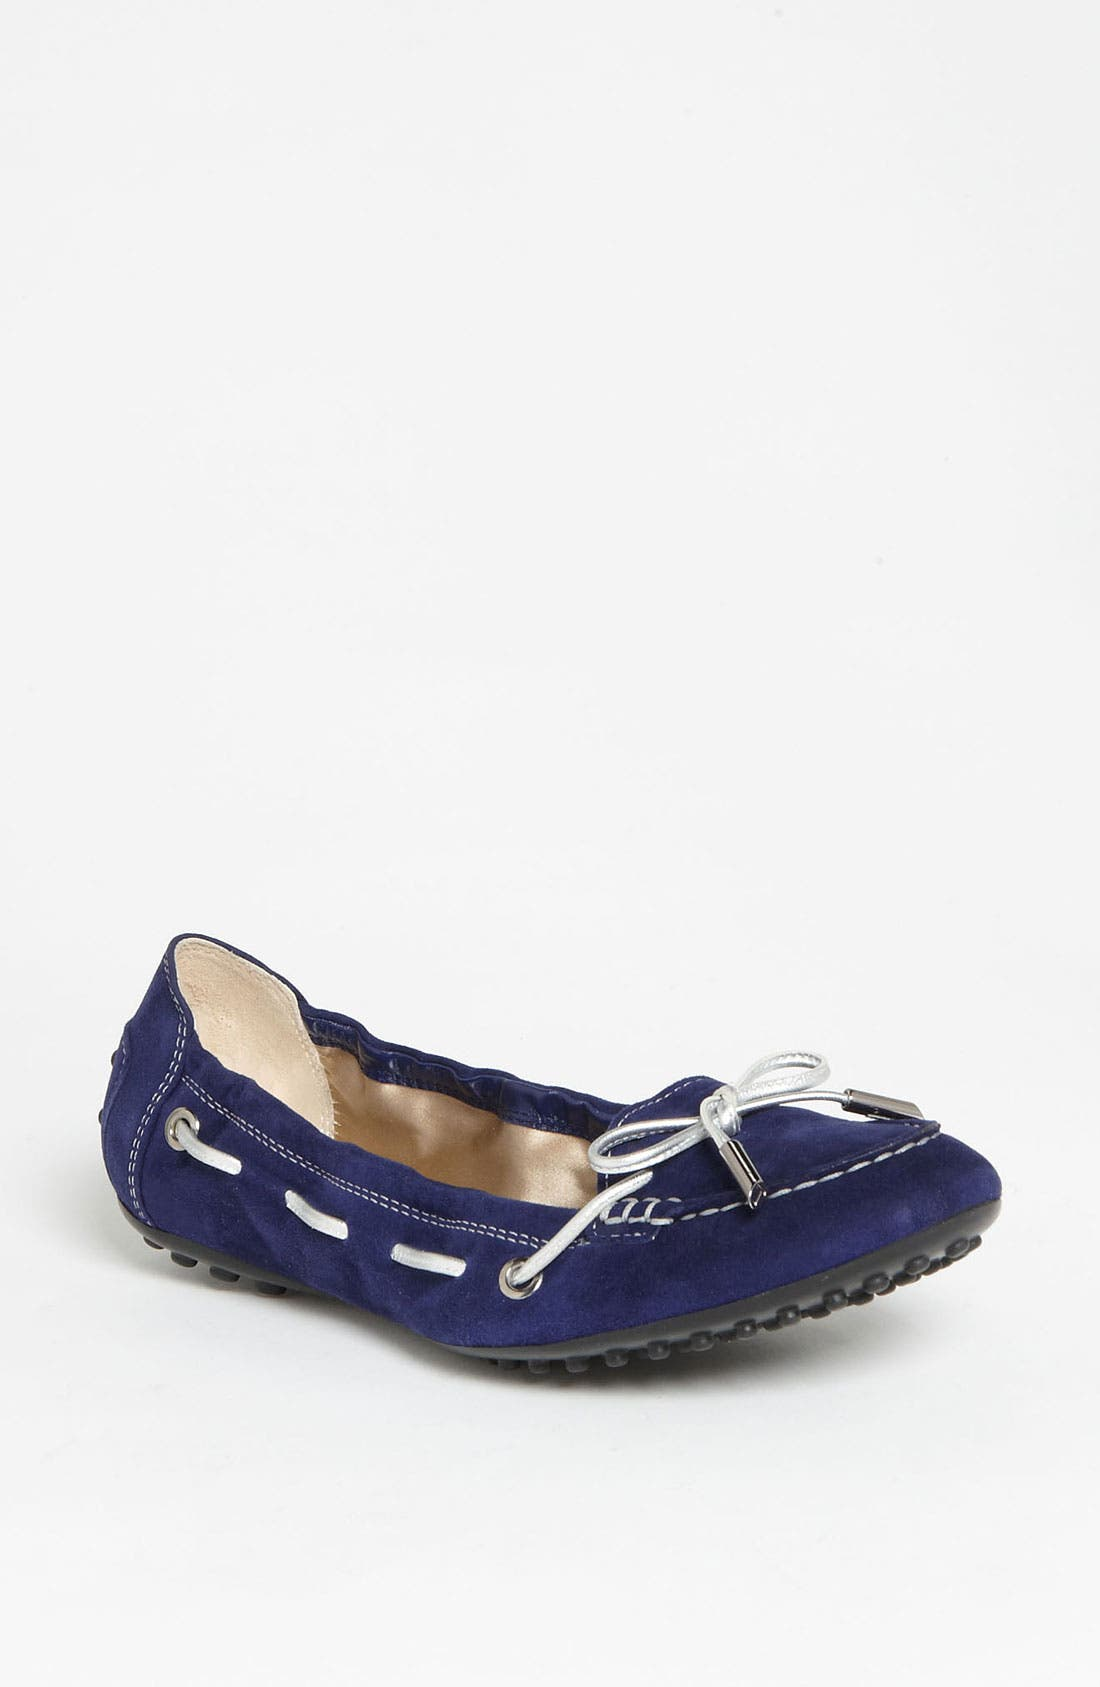 Alternate Image 1 Selected - Tod's 'Laccetto' Ballet Flat